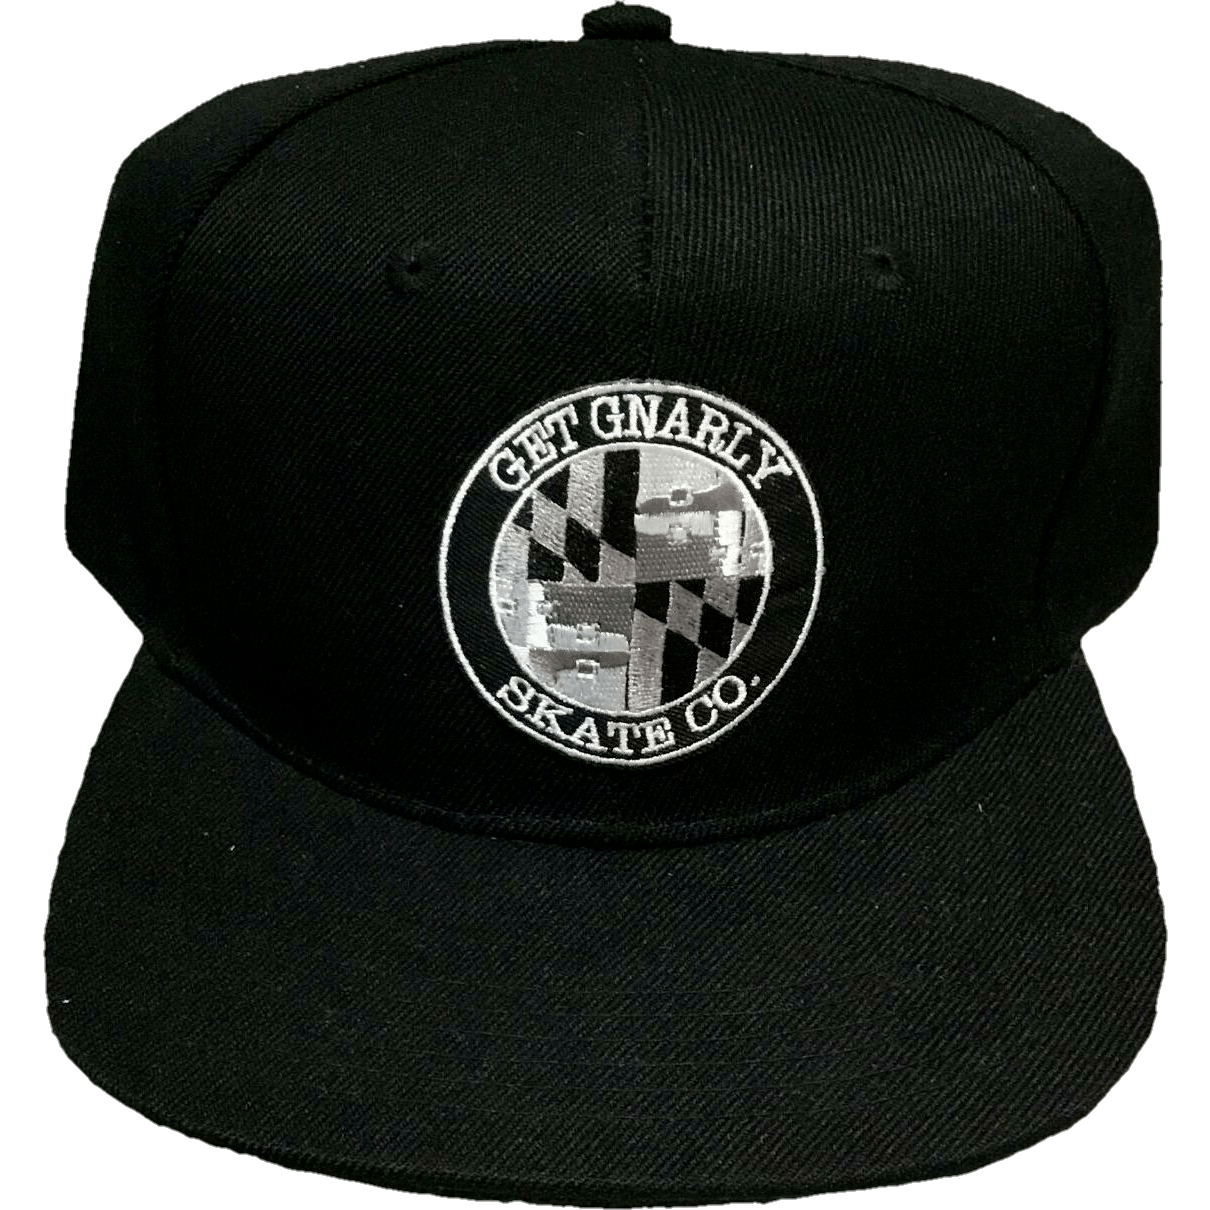 Get Gnarly Skate Co. Shield Snapback Black-Hat-Get Gnarly